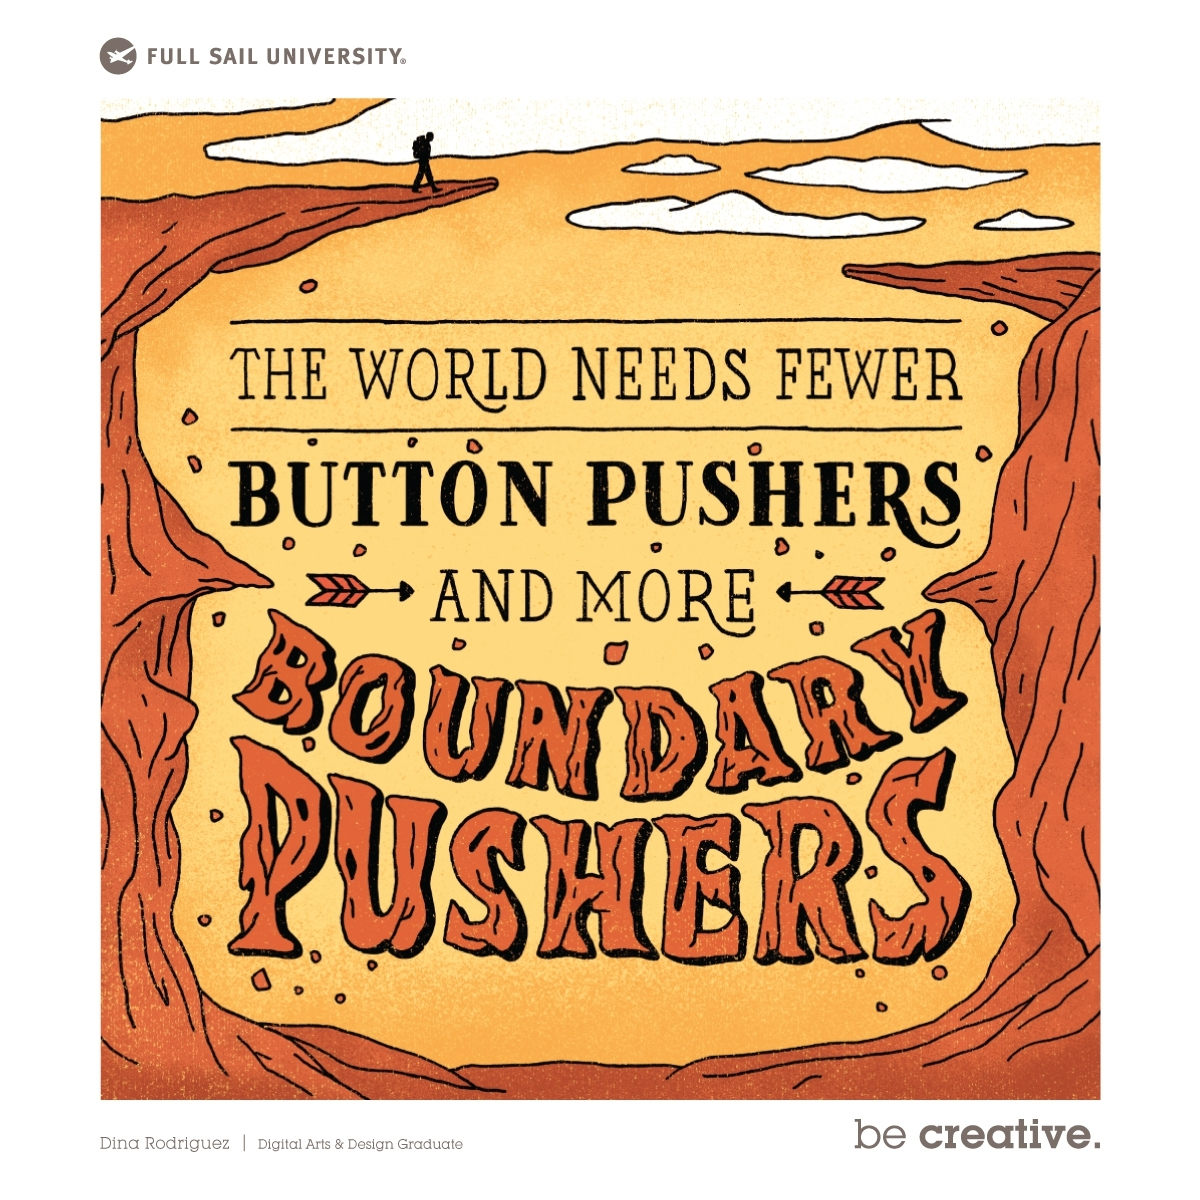 View The World Needs Fewer Button Pushers and More Boundary Pushers